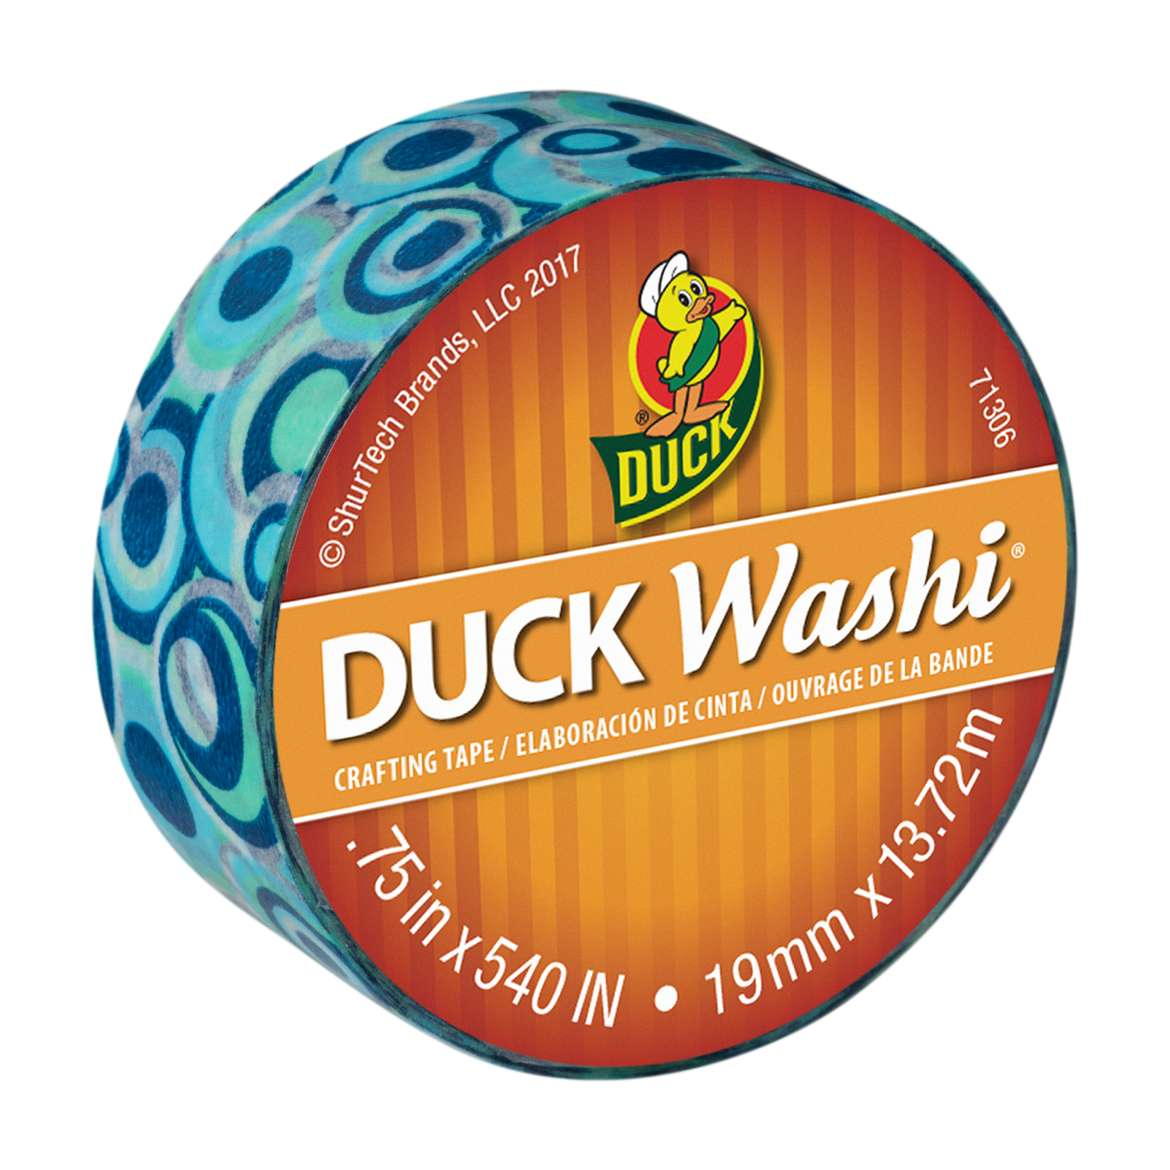 Duck Washi® Crafting Tape - Blue Mod, 0.75 in. X 15 yd. Image